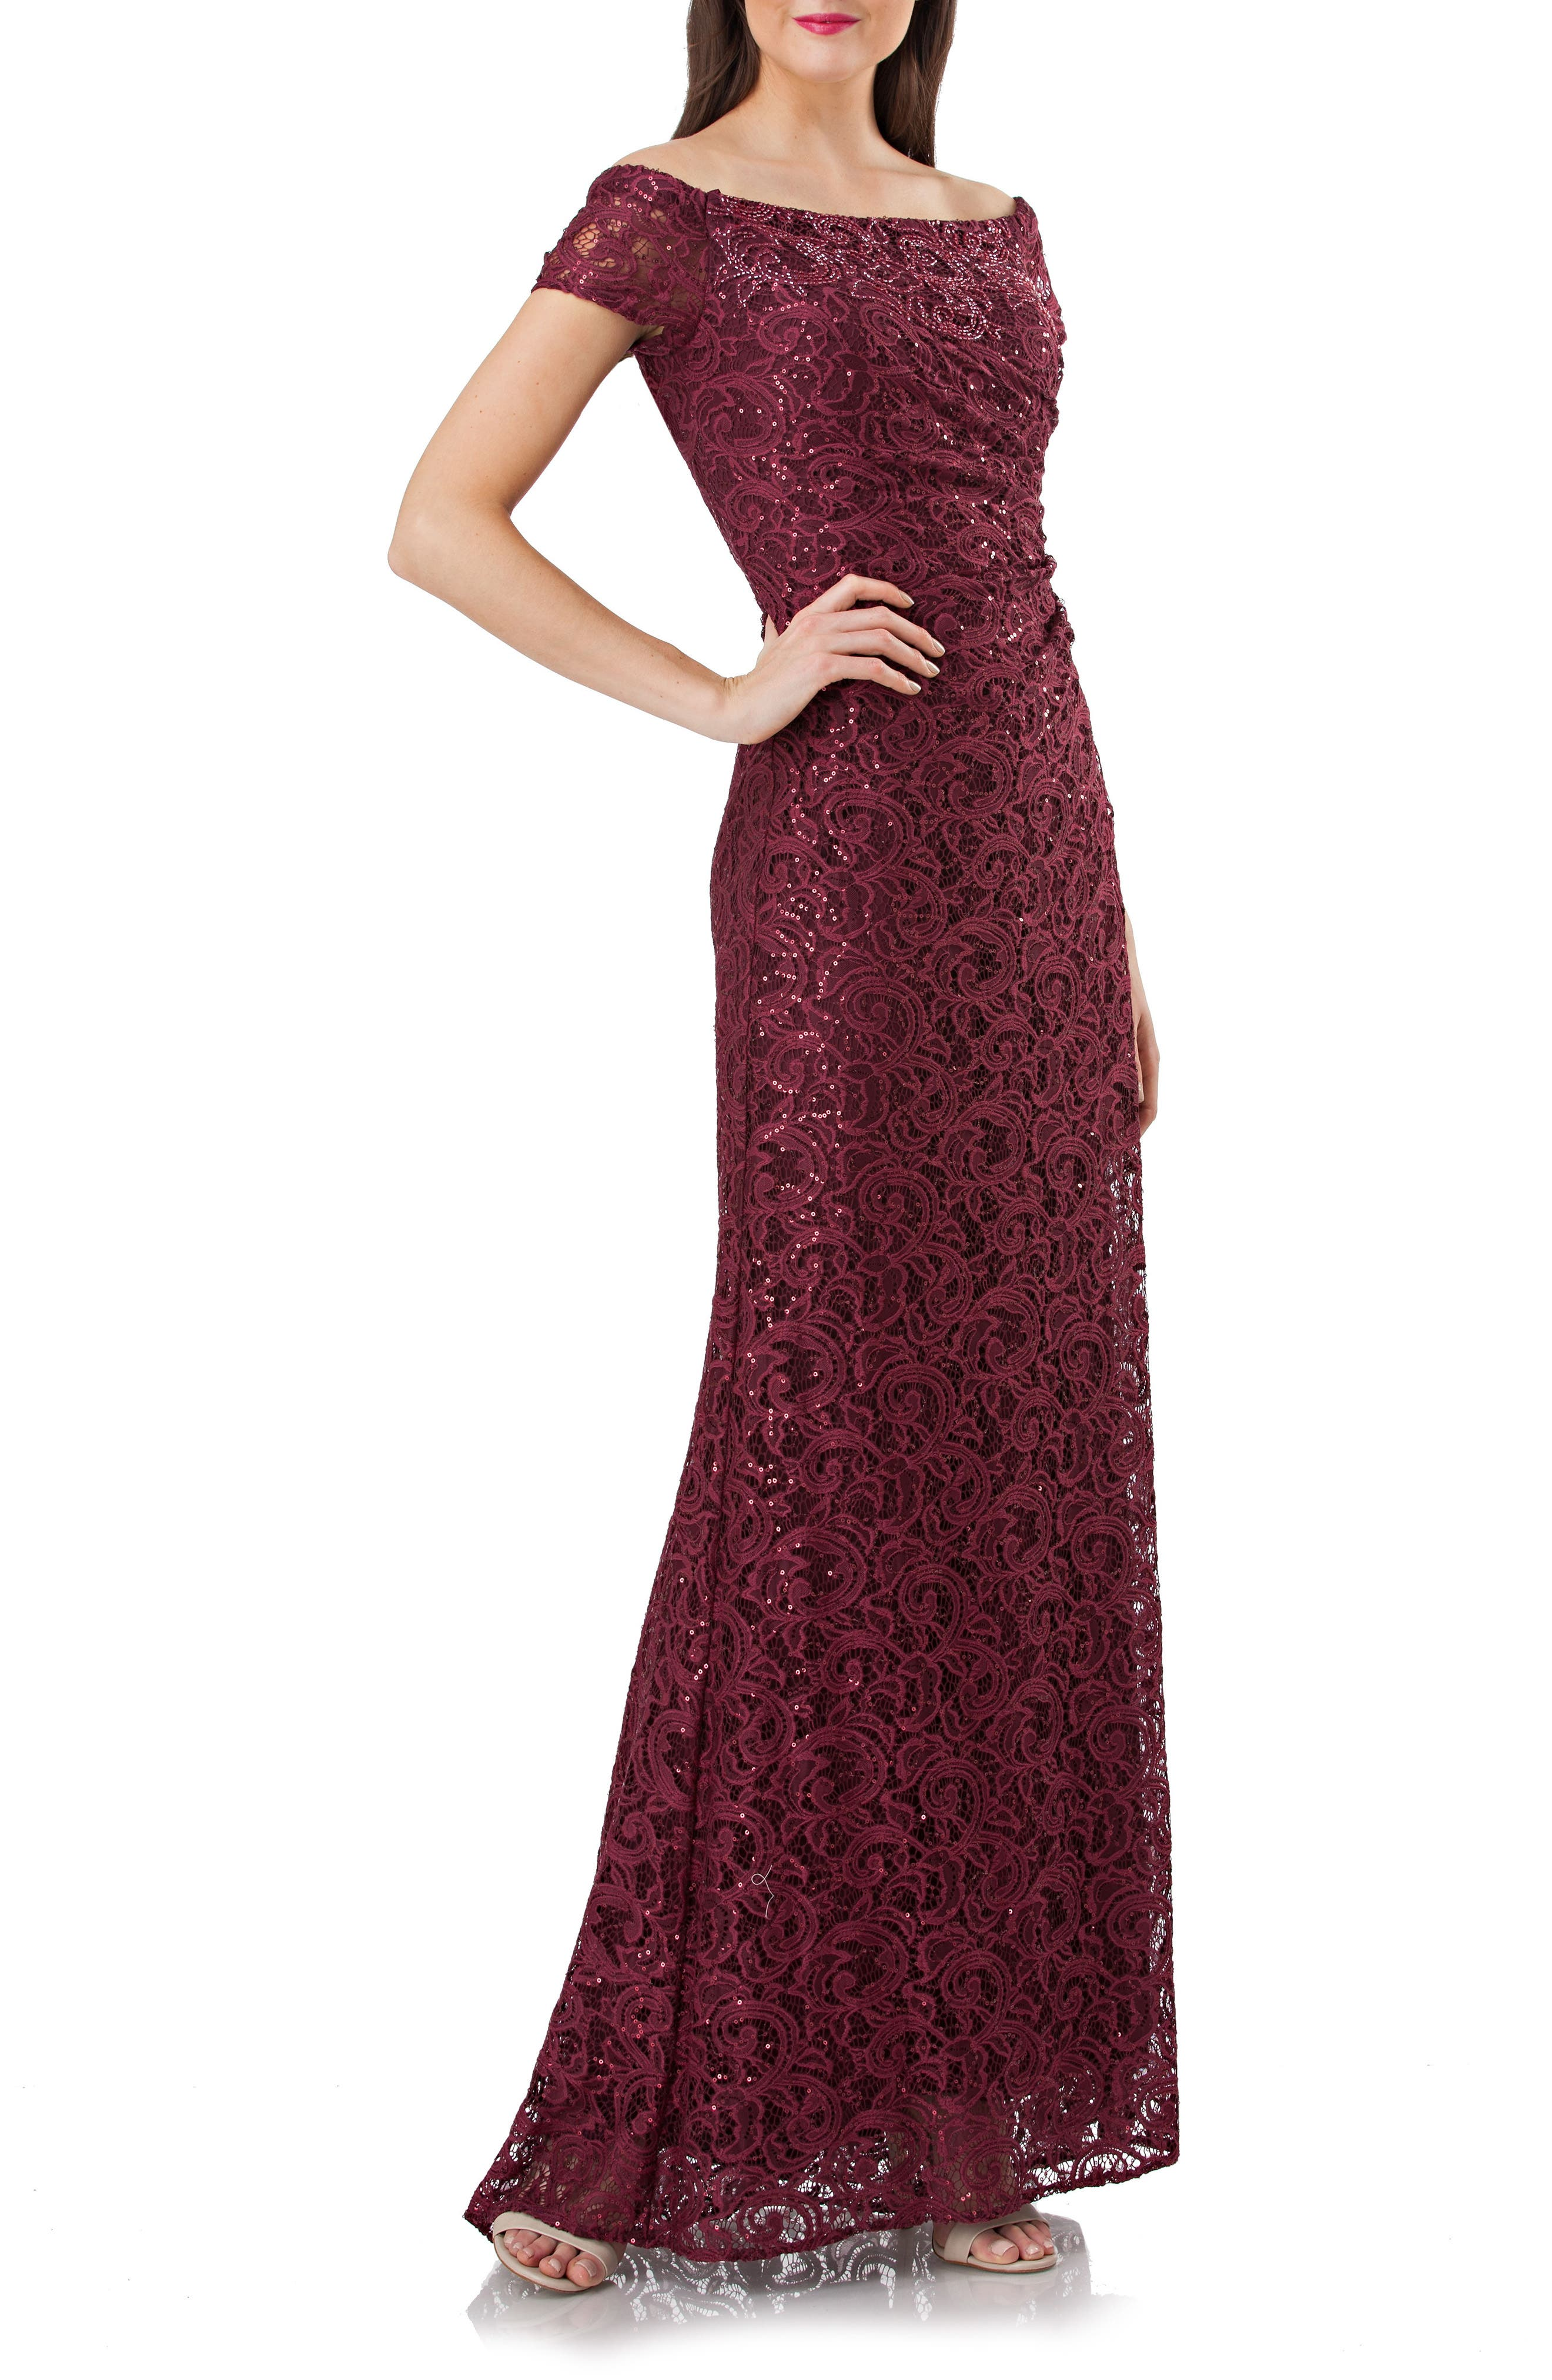 Alternate Image 1 Selected - Carmen Marc Valvo Infusion Sequin Lace Off the Shoulder Mermaid Gown